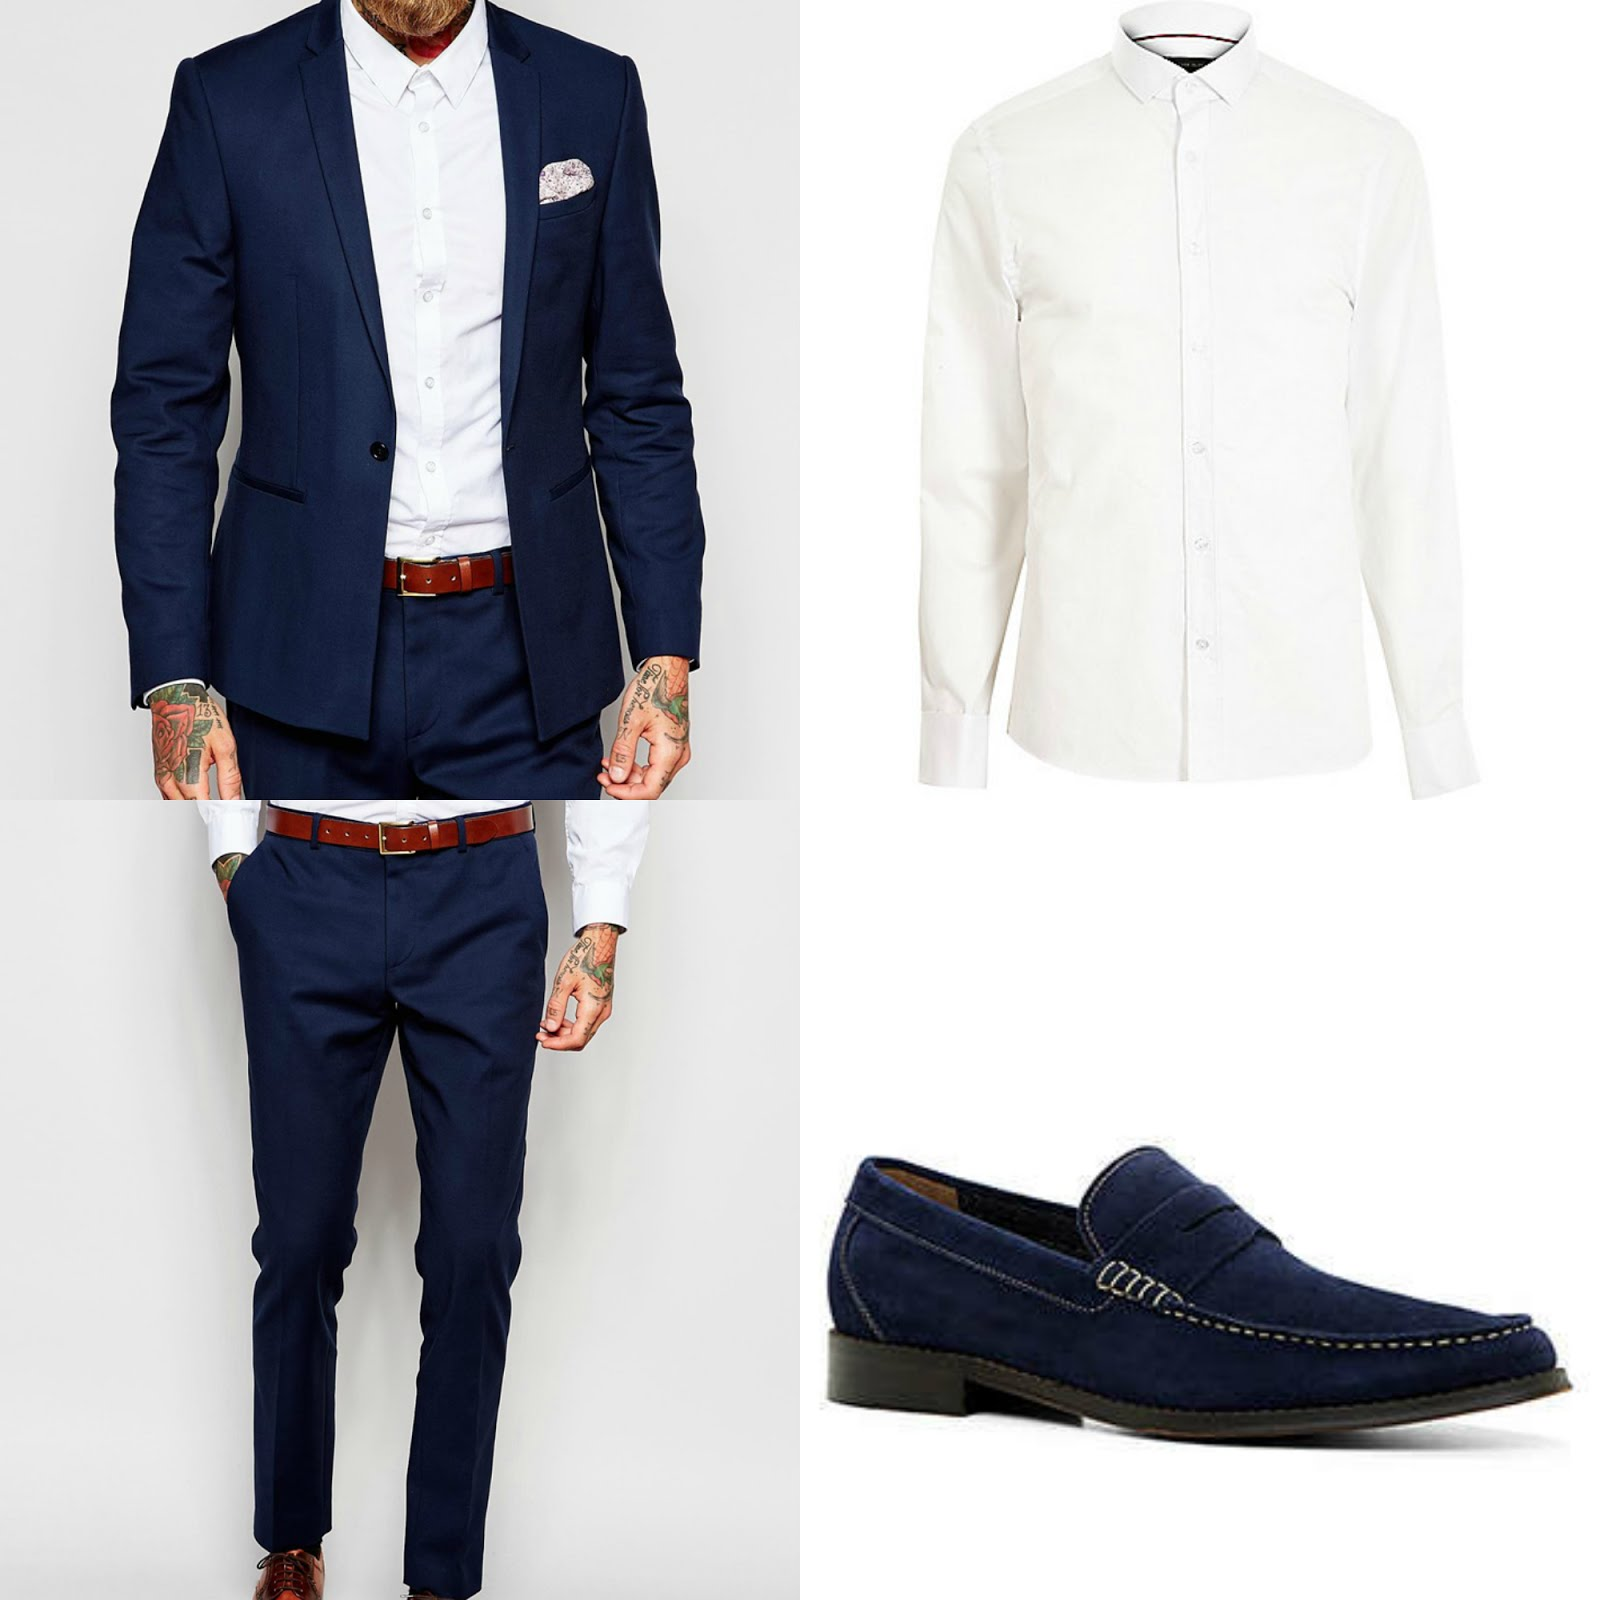 Lexis Lifestyle Christmas Series 35 Outfit Ideas For Him